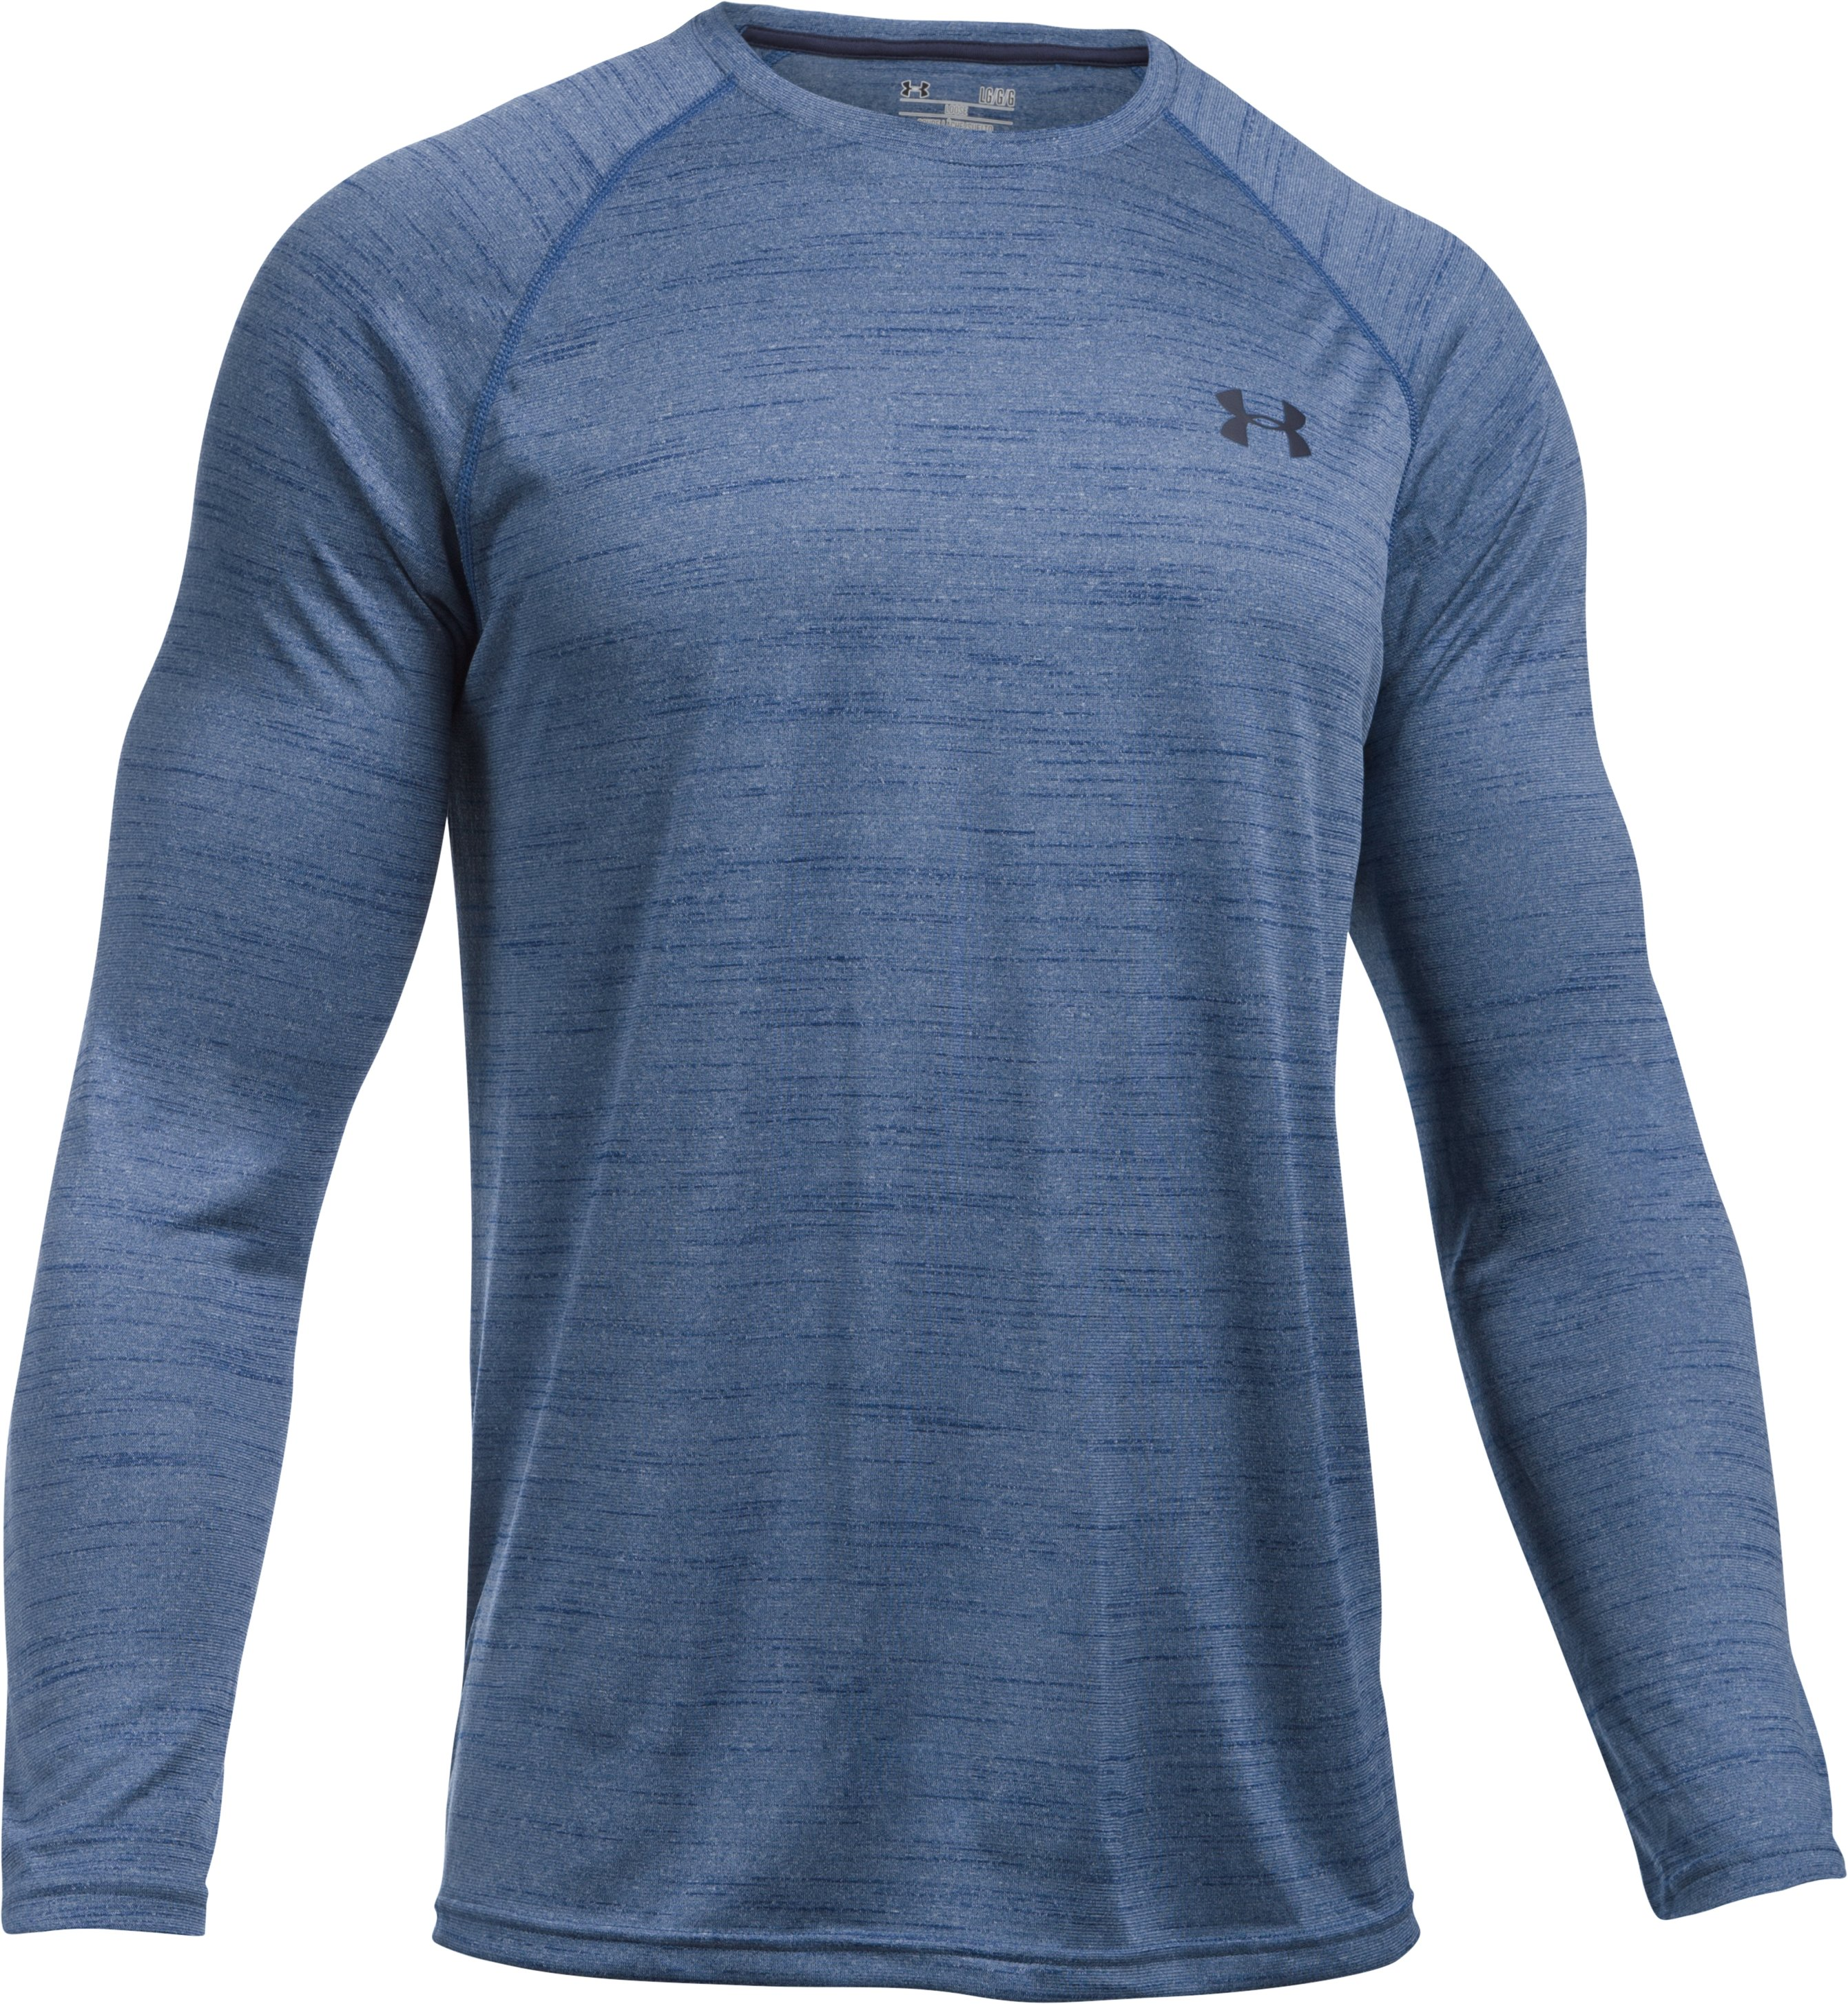 Men's UA Tech™ Patterned Long Sleeve T-Shirt, HERON, undefined